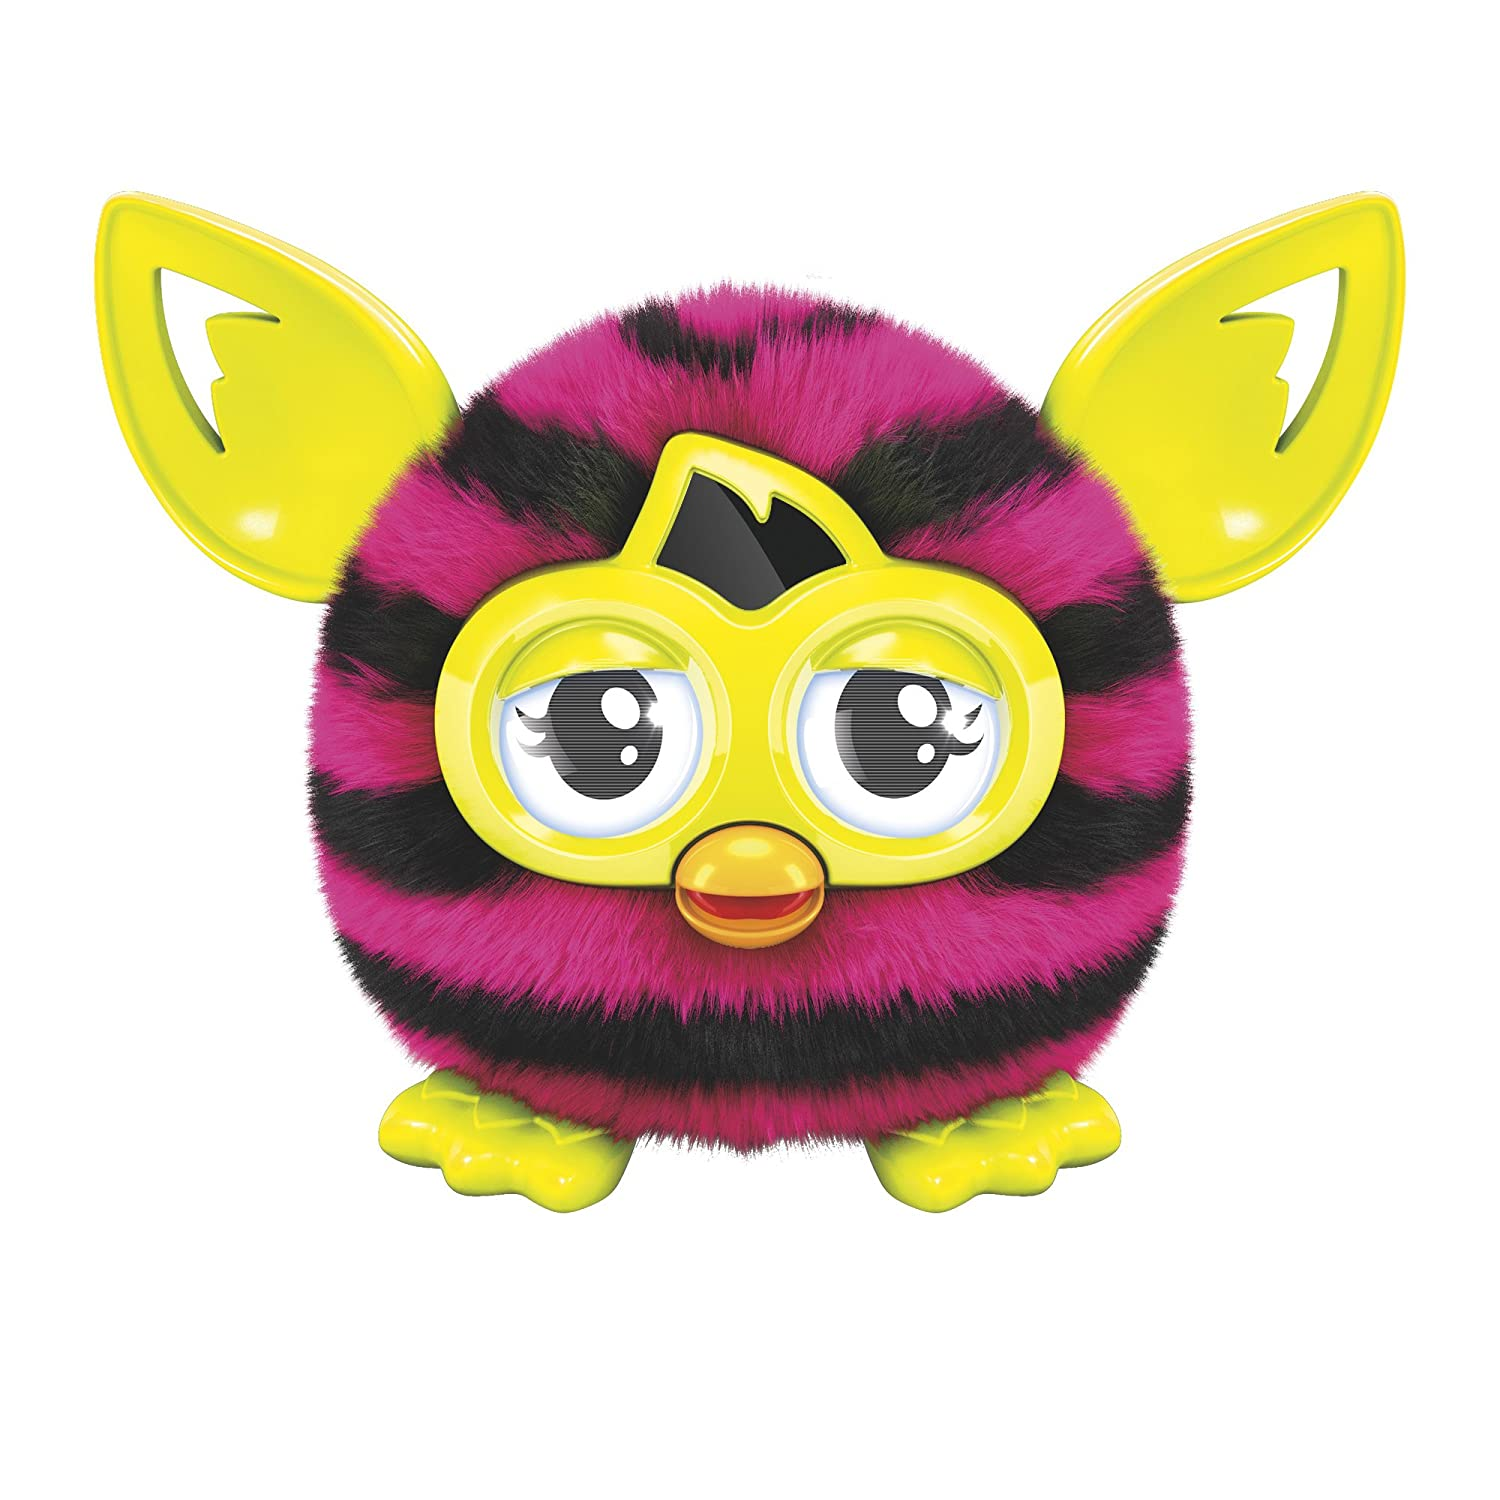 Furby Furbling Creature Stripes Plush B00ECV4UN6